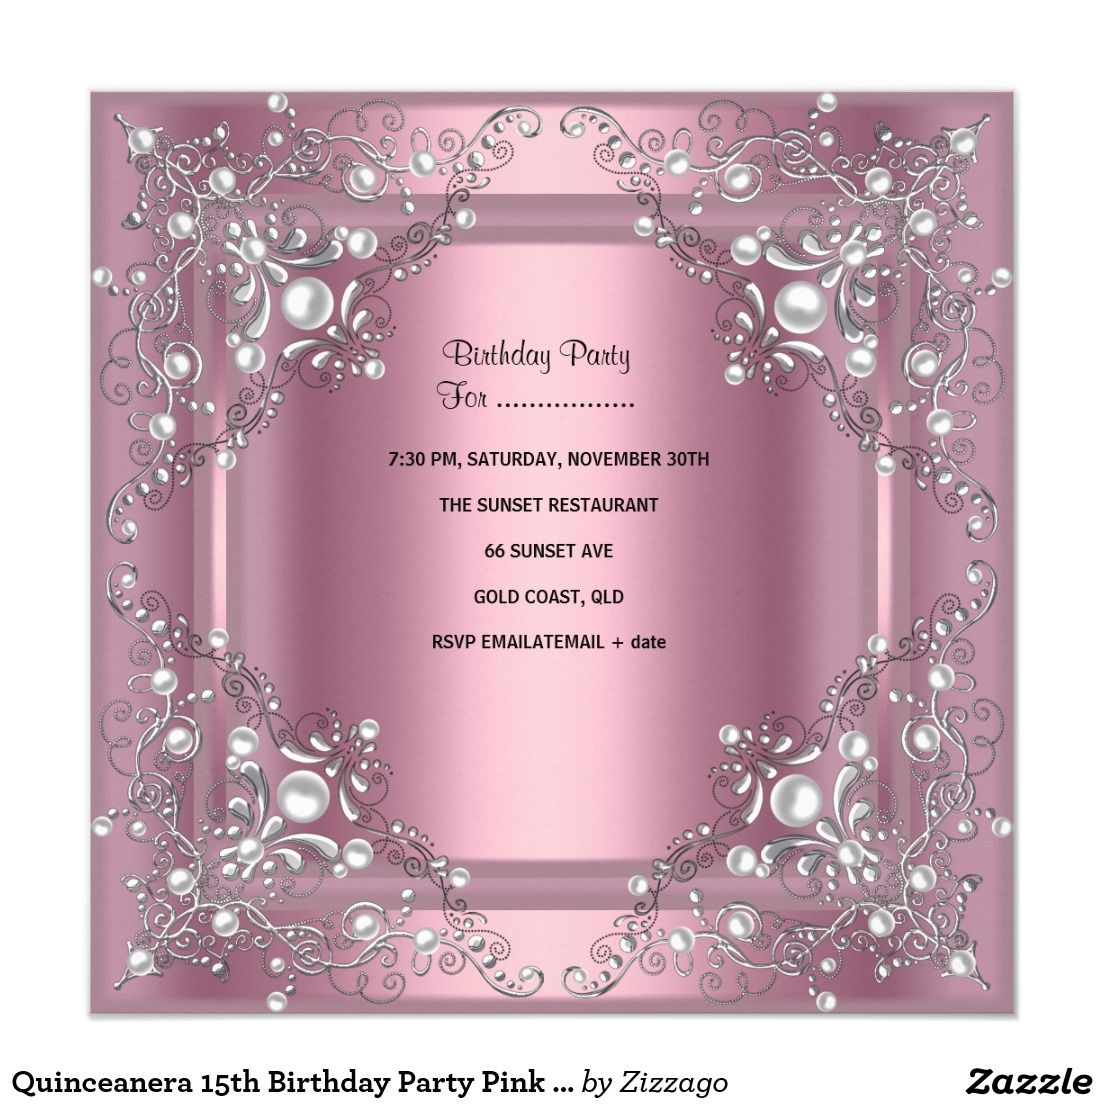 Quinceanera 15th Birthday Party Pink Pearl Invitation